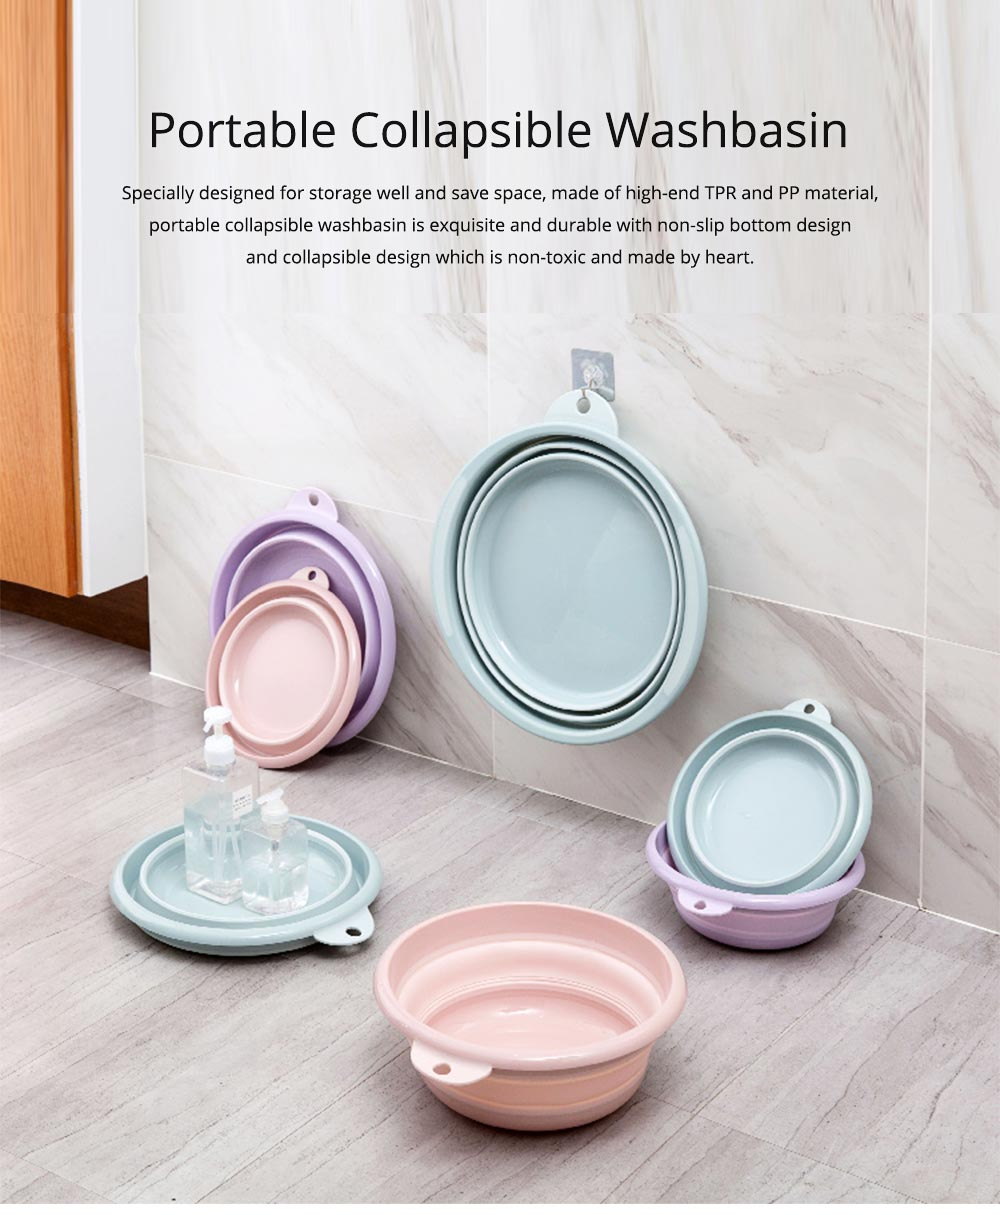 Portable Collapsible Washbasin with Anti-skid bottom Design for Easy Travel & Space-saving Washbasin with Hanging Hole 0